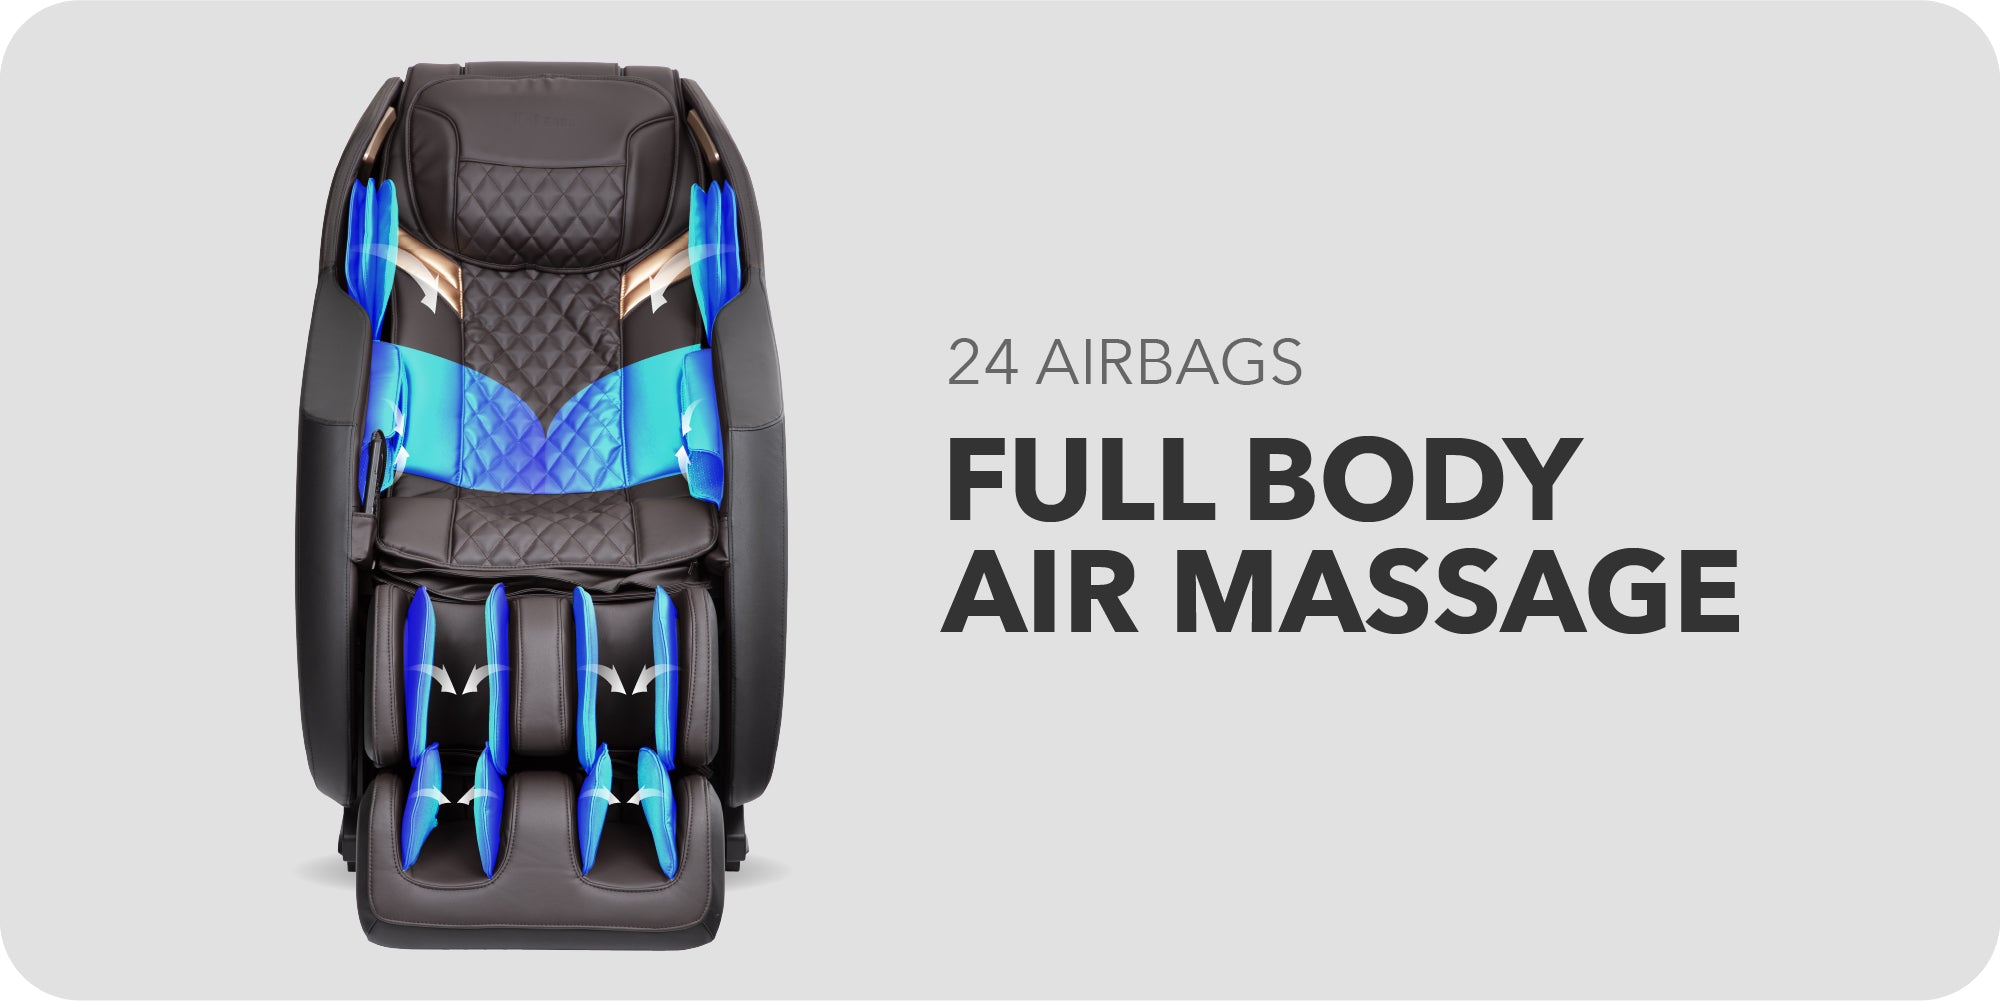 Full body airbag